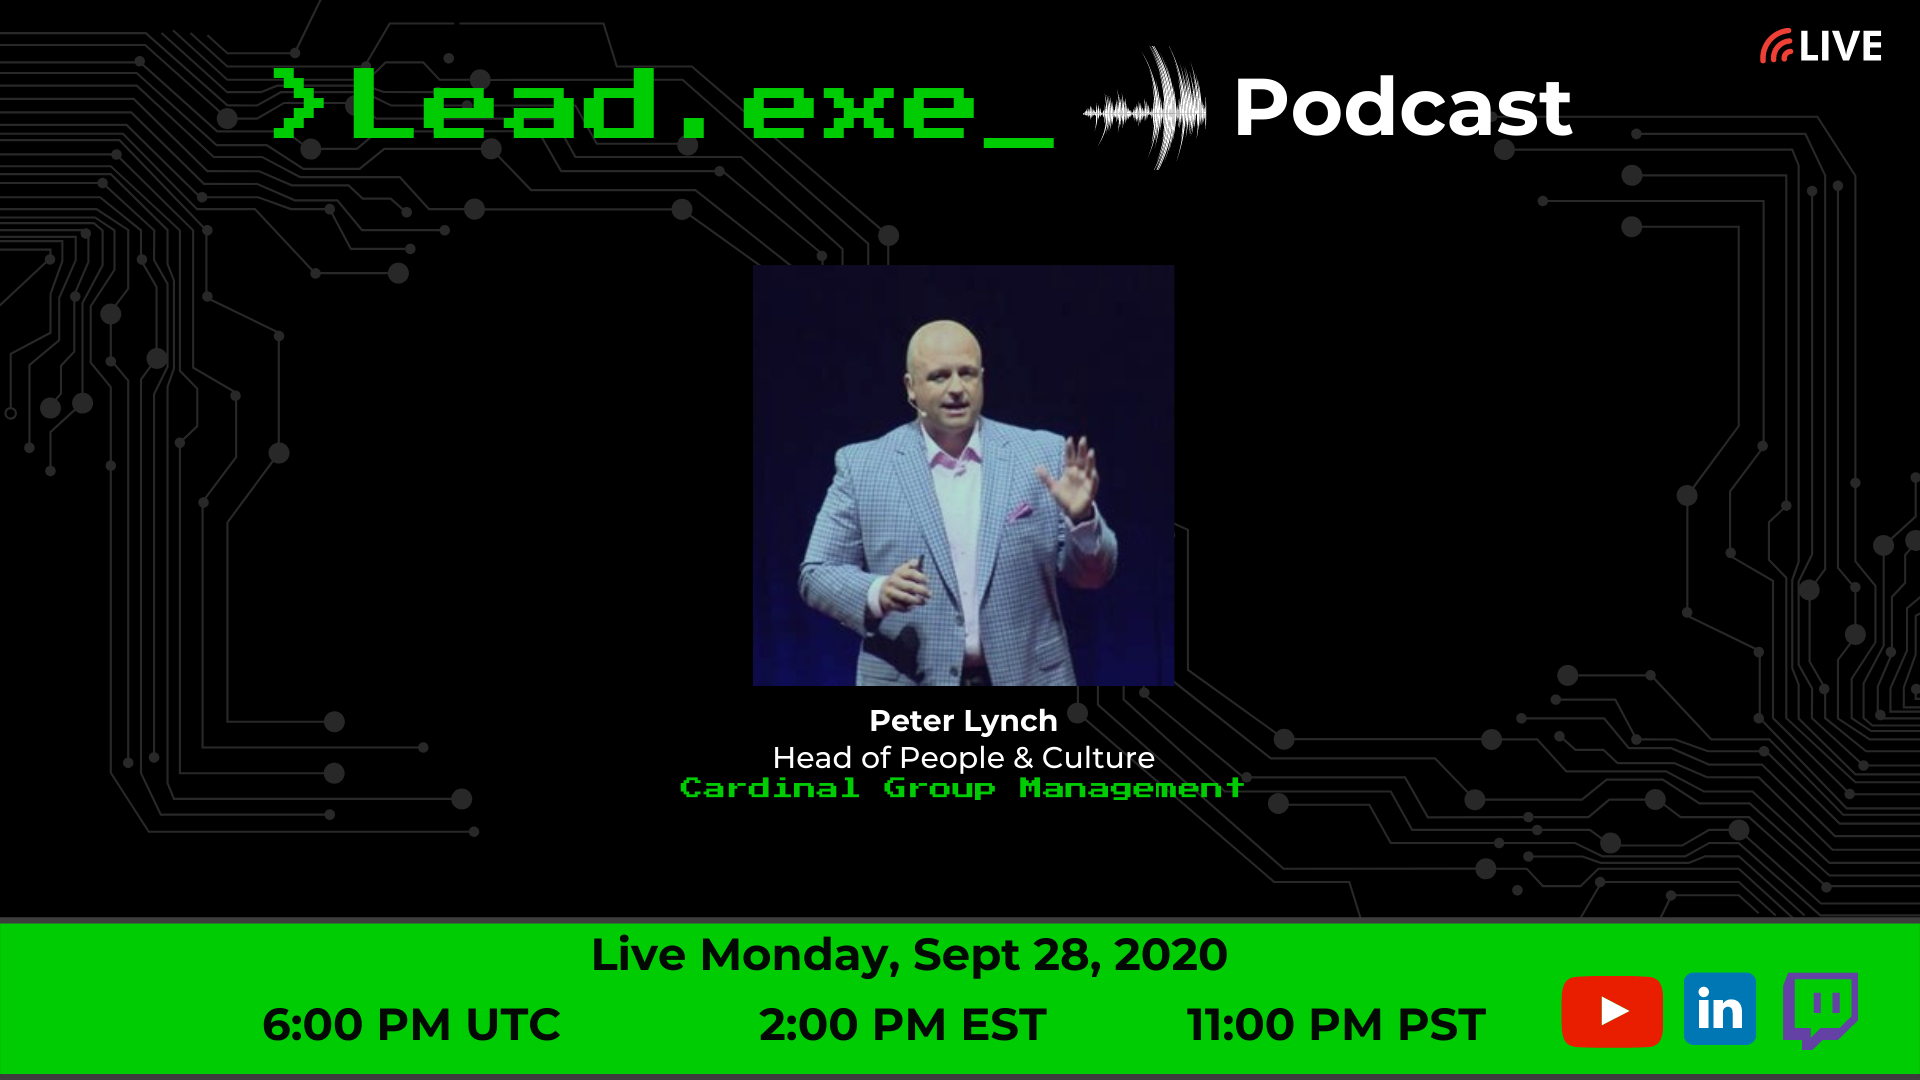 Episode 39: Livestream Human Centered Leadership with Peter Lynch